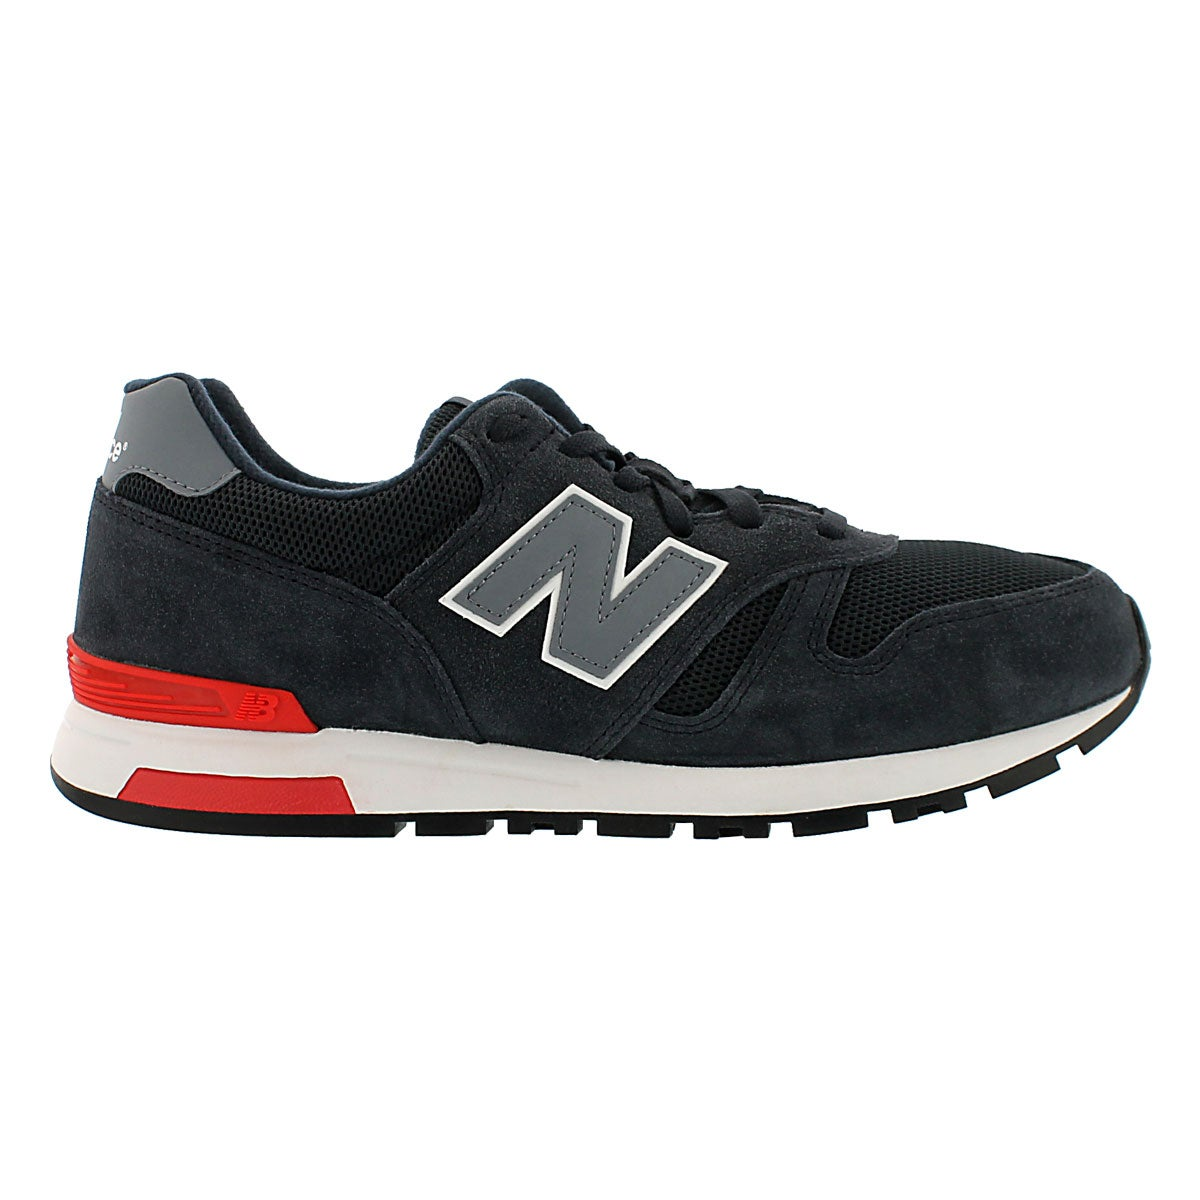 Mns 565 nvy/gry lace up running shoe